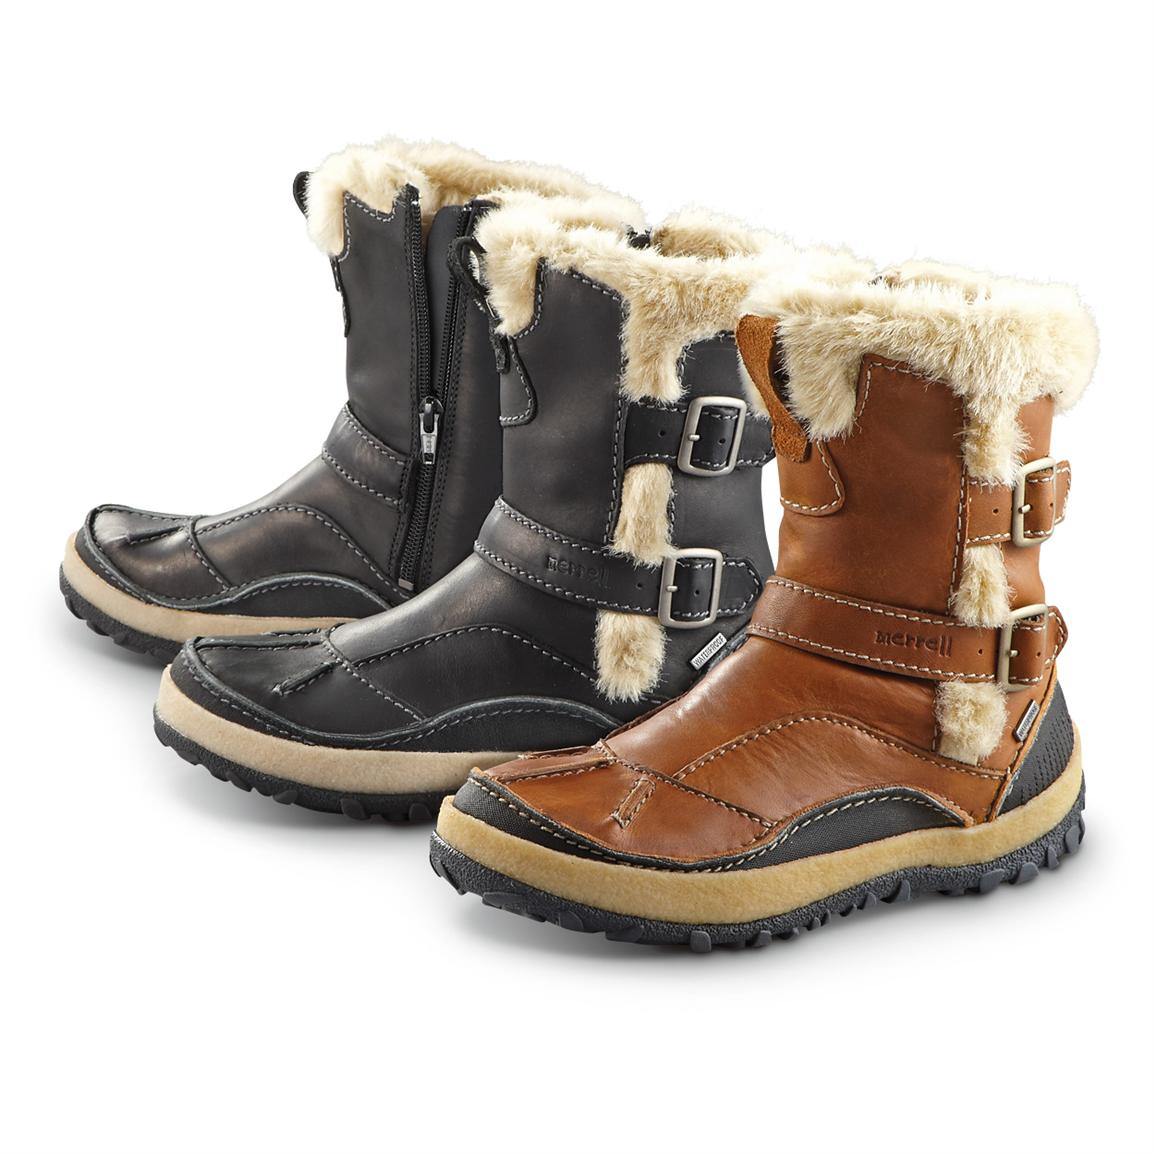 Cute Snow Boots For Women nr7m2rqW